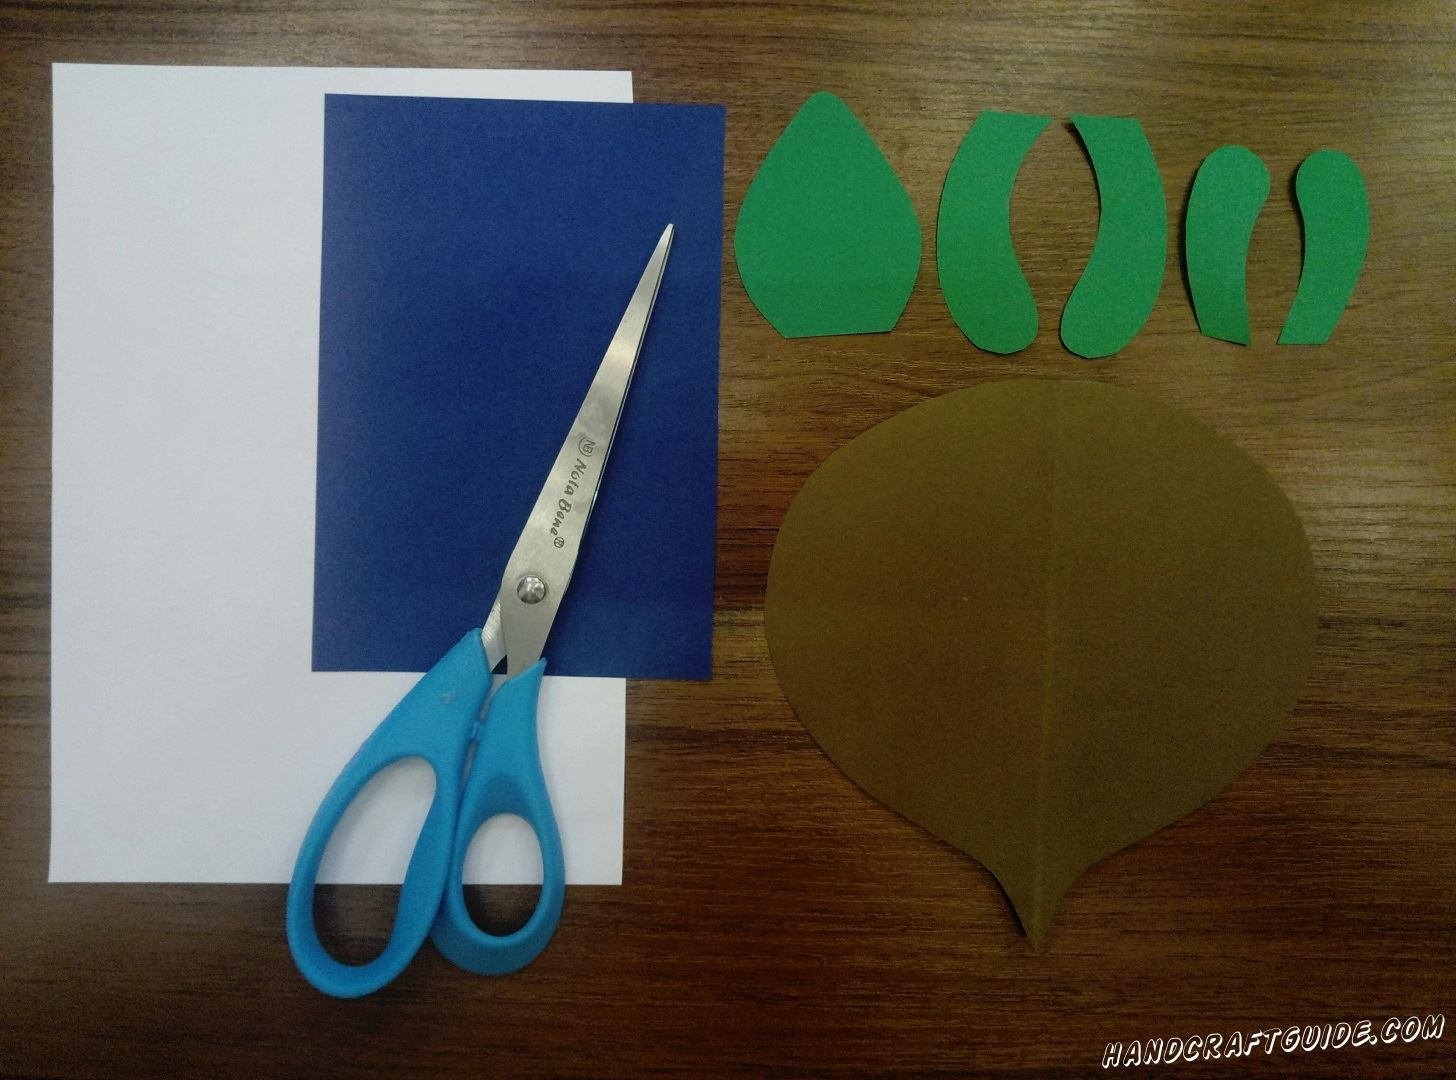 First, let's take brown paper and cut out a circle with a small sprout, it looks like a beetroot :) Then from the green paper cut out 4 rounded stripes for paws and one piece for head which resembls a strawberry.